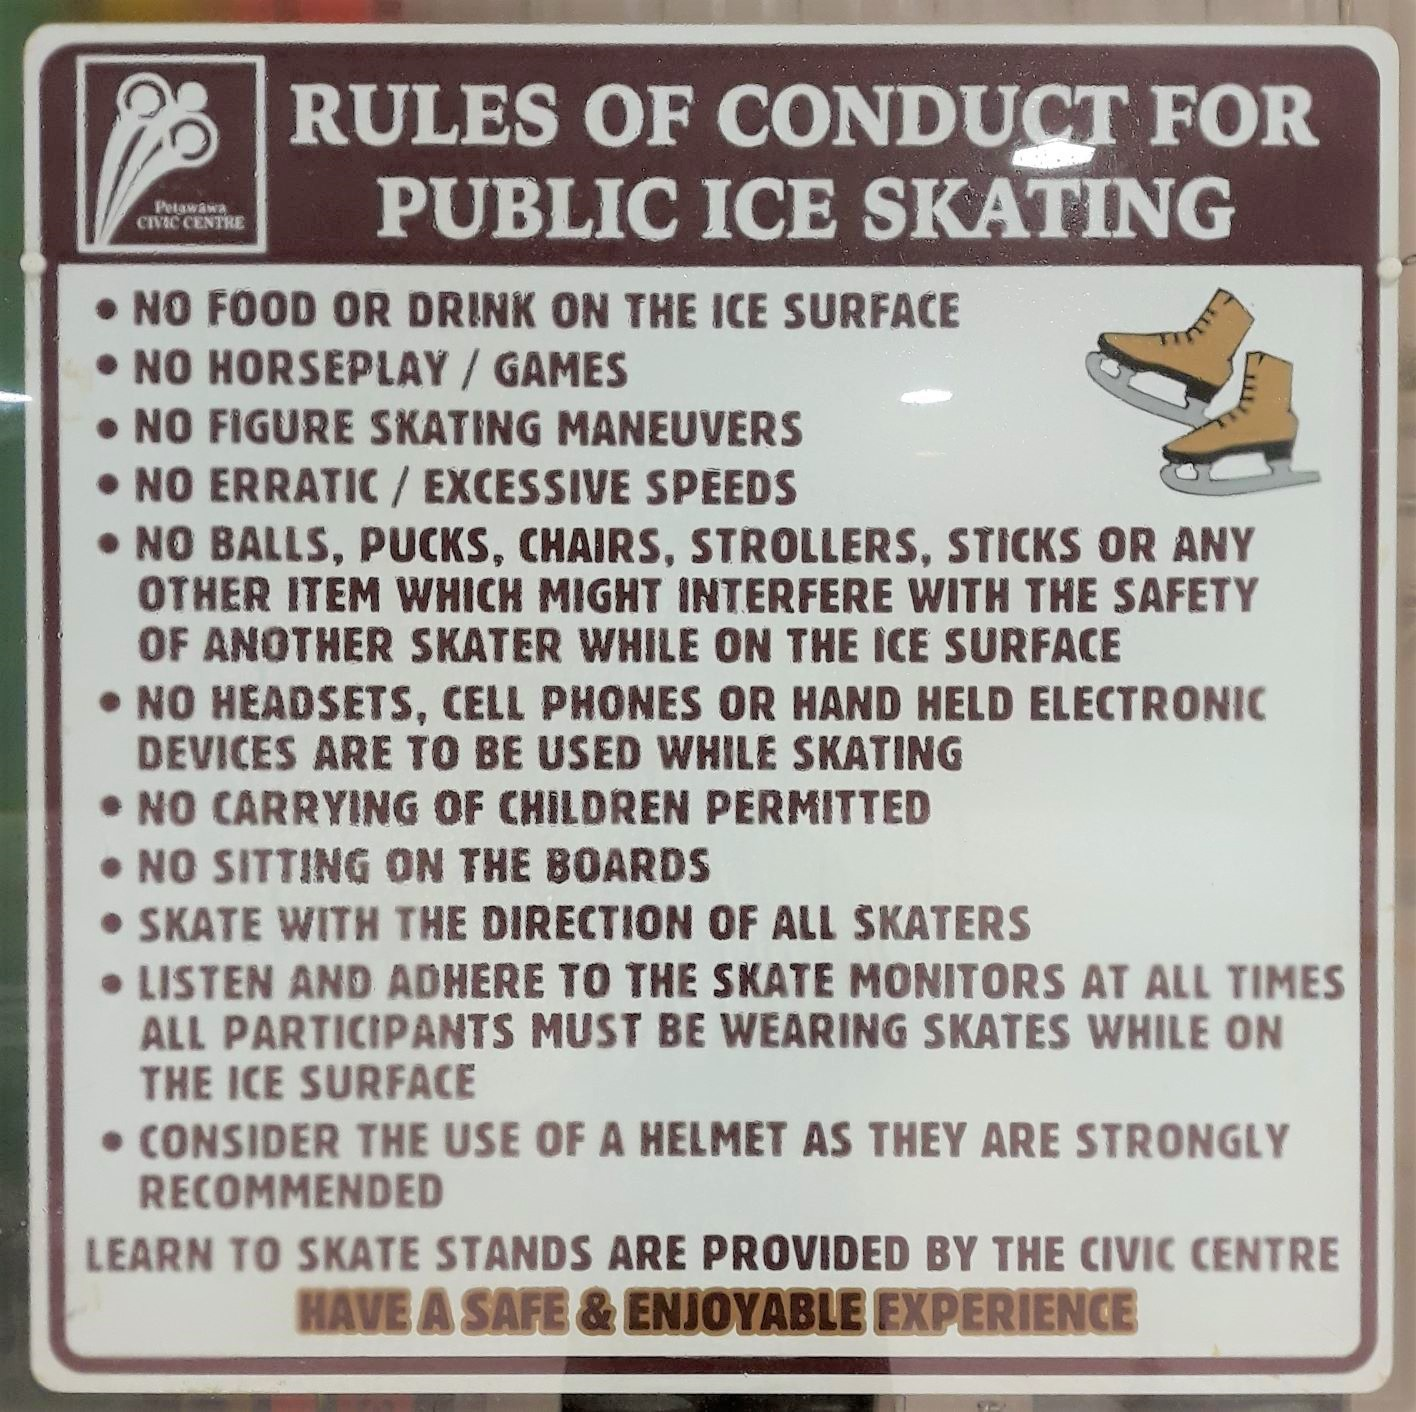 Photo of wall poster with public skating rules